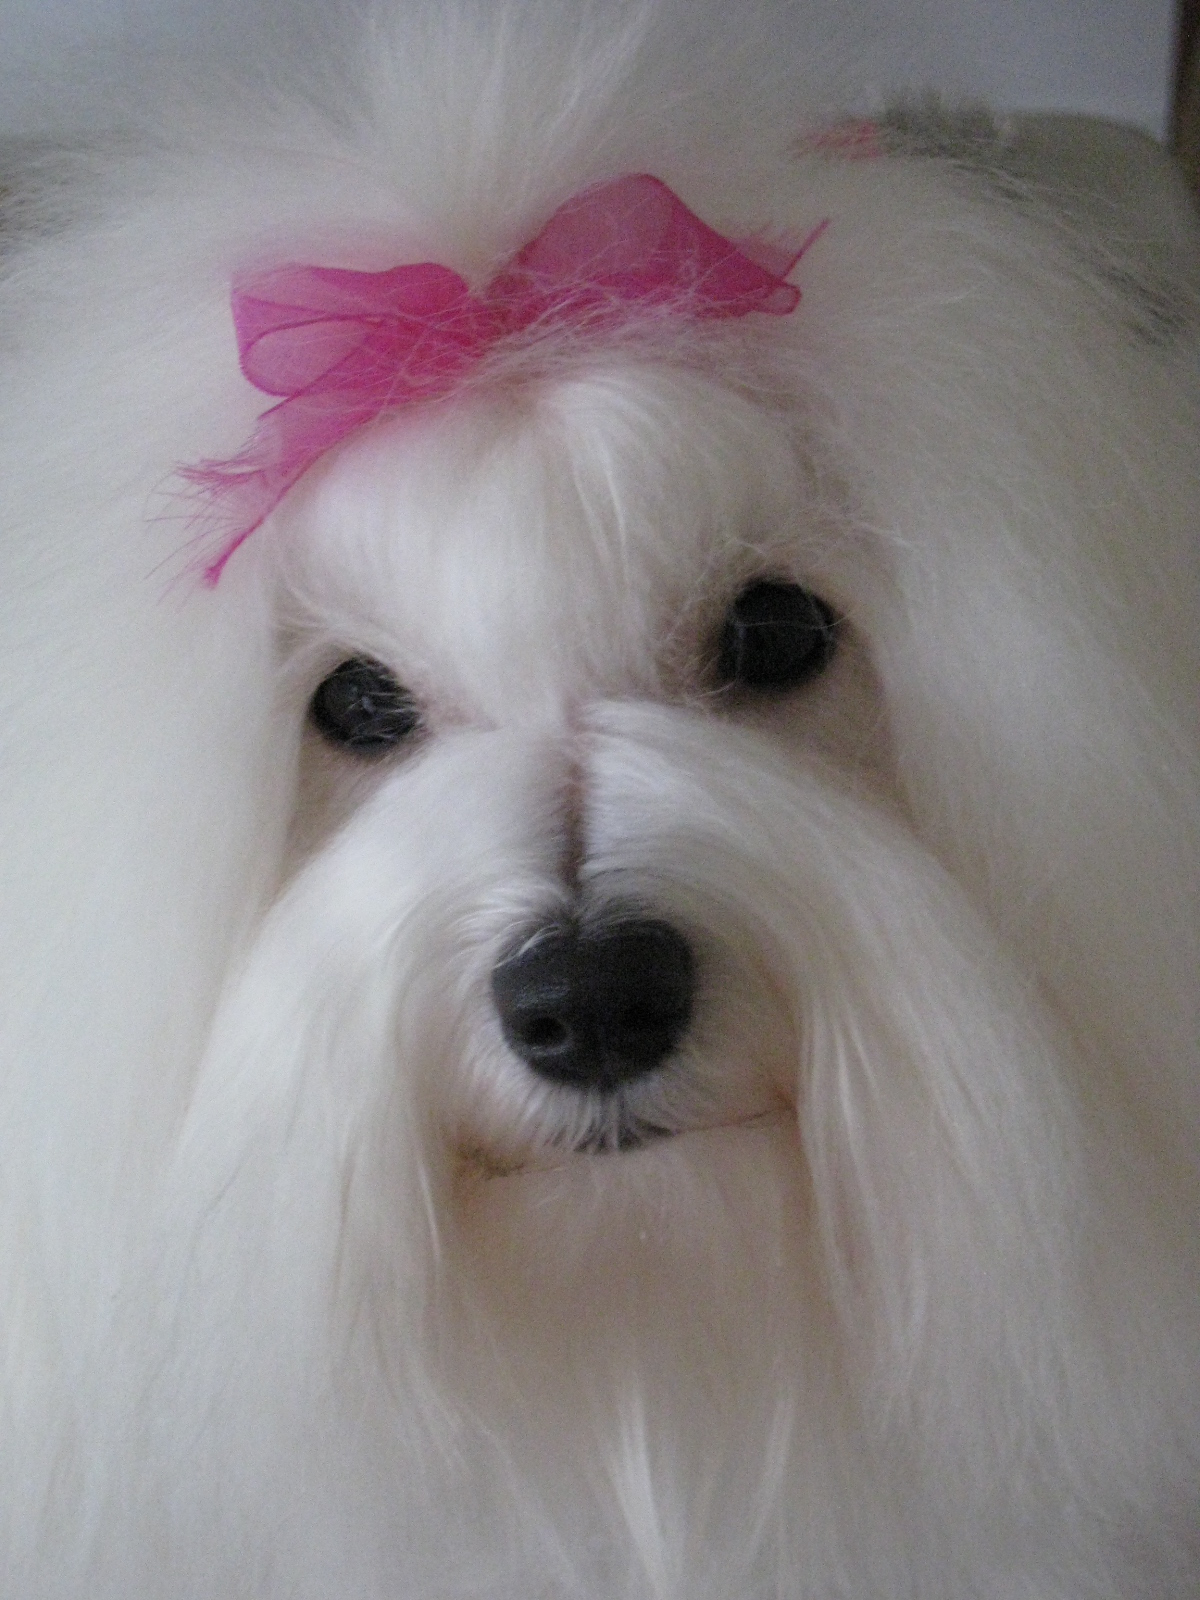 Cute Coton de Tulear dog girl wallpaper